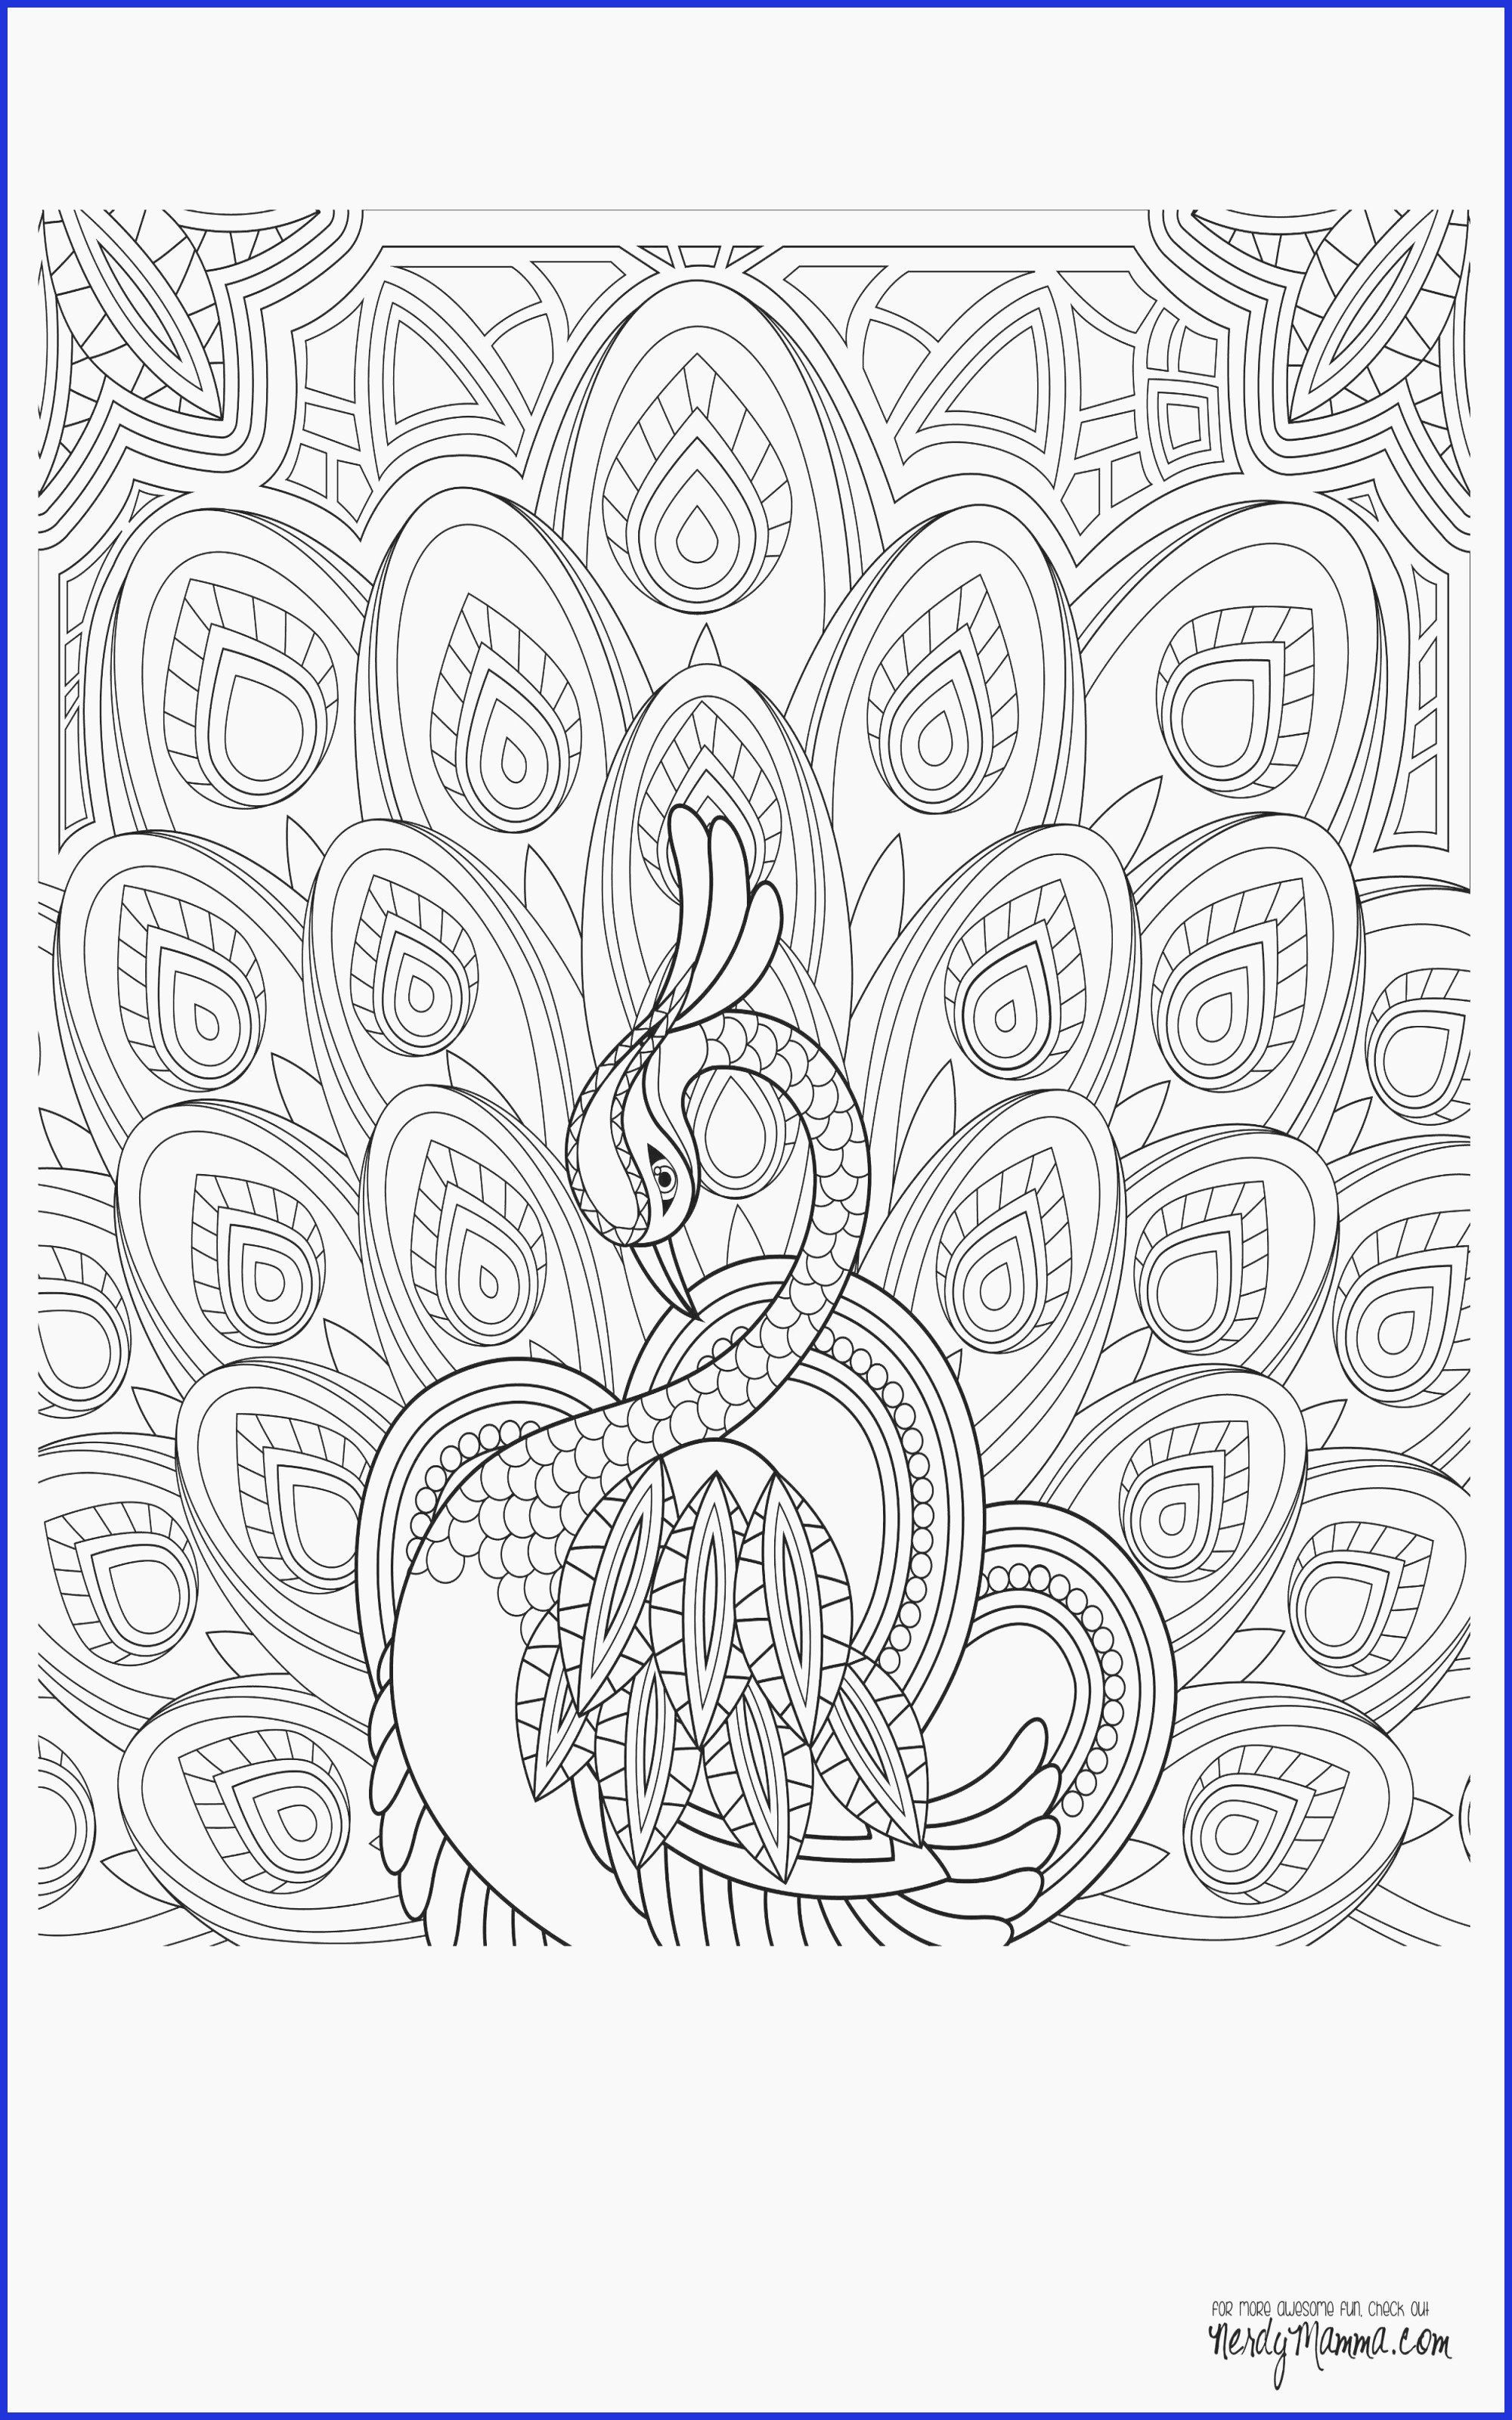 Coloring Games Online For Free Love Coloring Pages Mandala Coloring Pages Coloring Pages For Teenagers